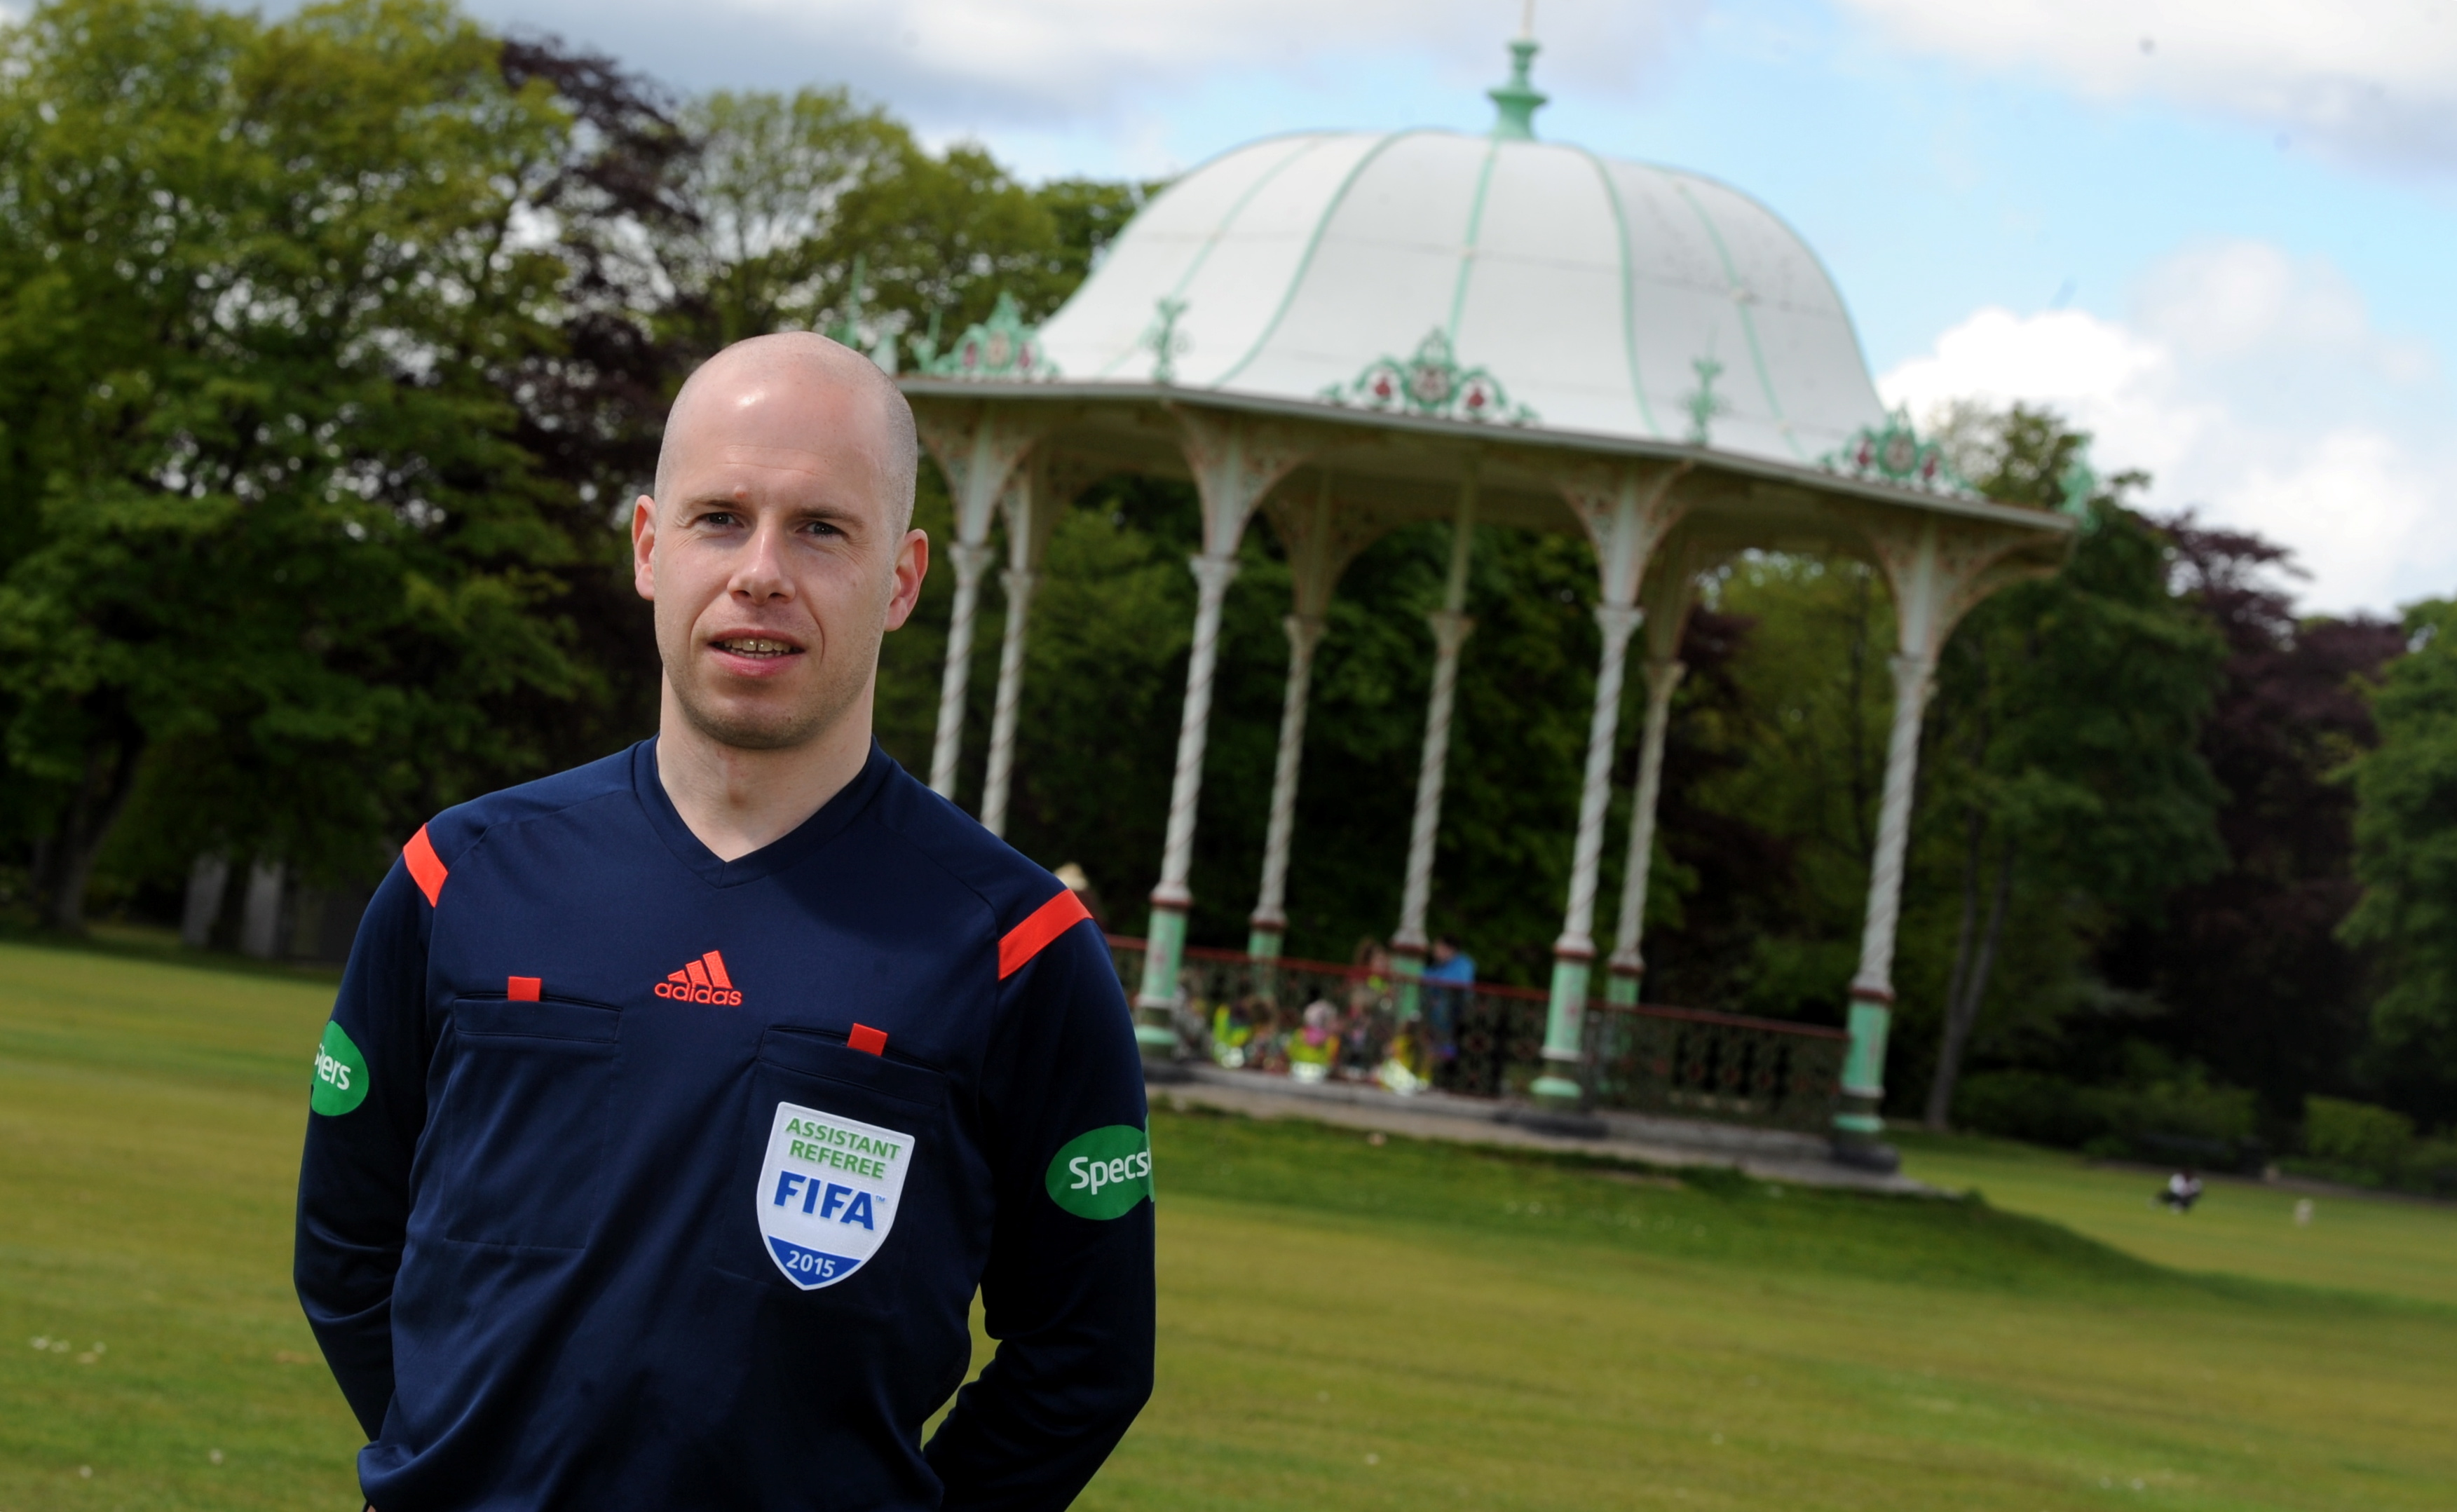 HAMPDEN DEBUT: Aberdonian  referee Alistair Mather. picture by darrell benns